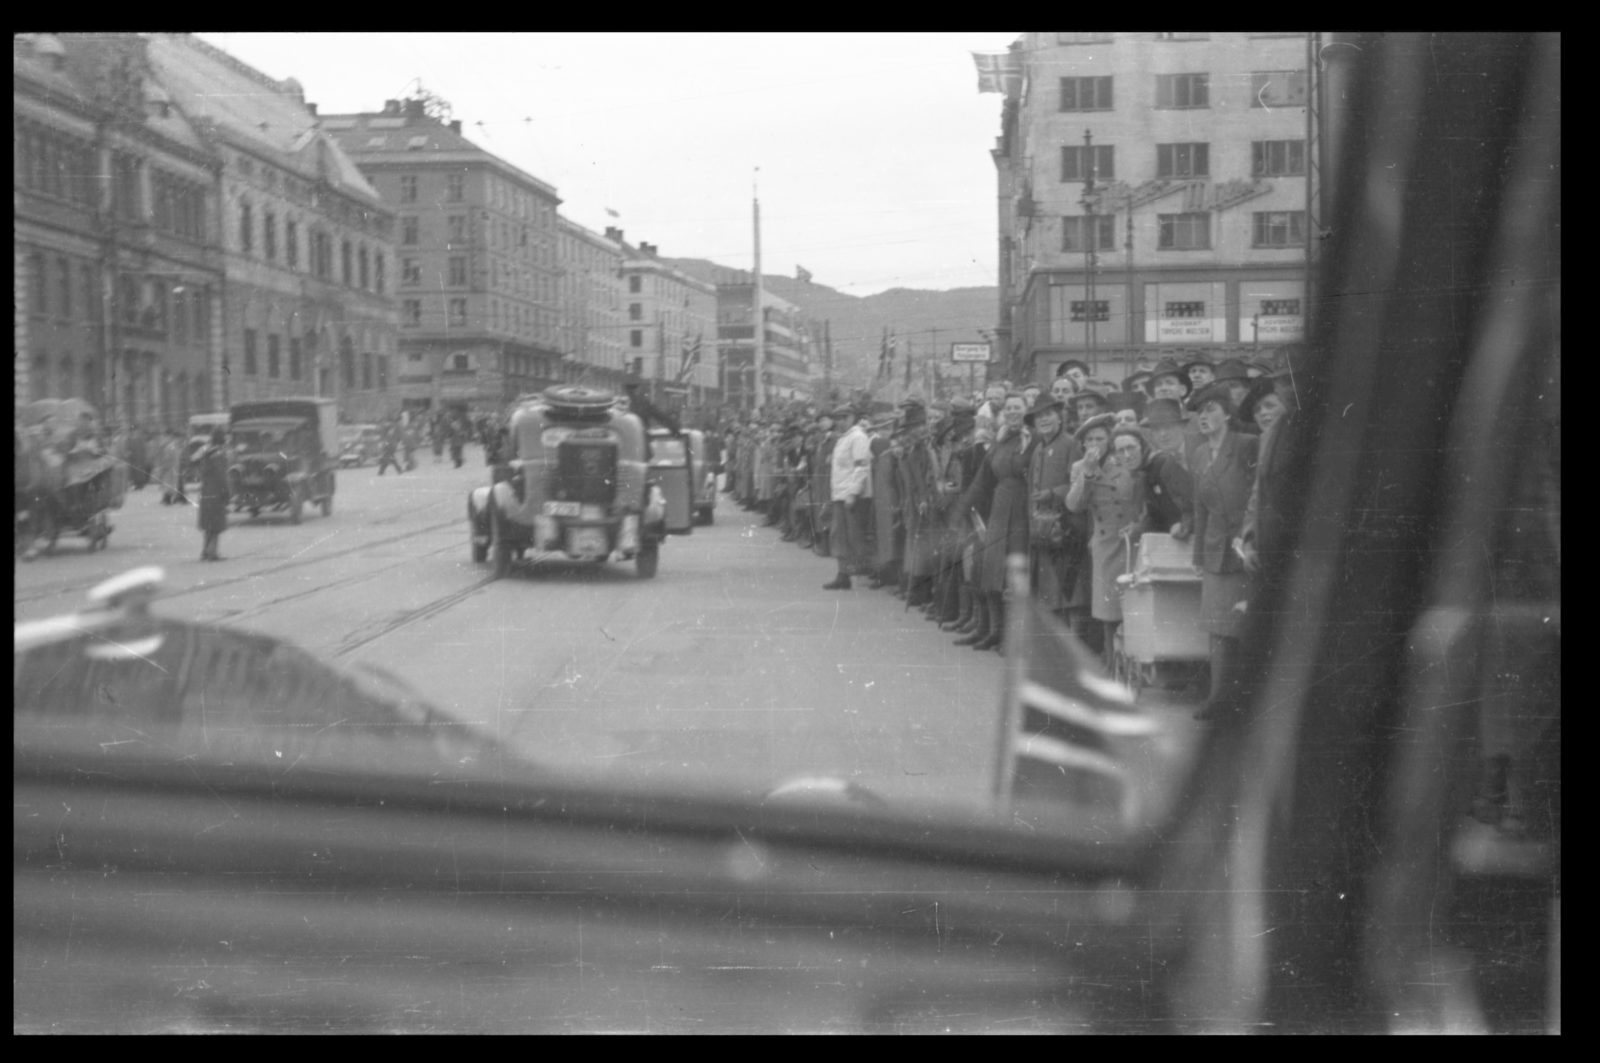 Colonel Trygve Sandvik with companions being transported into the city